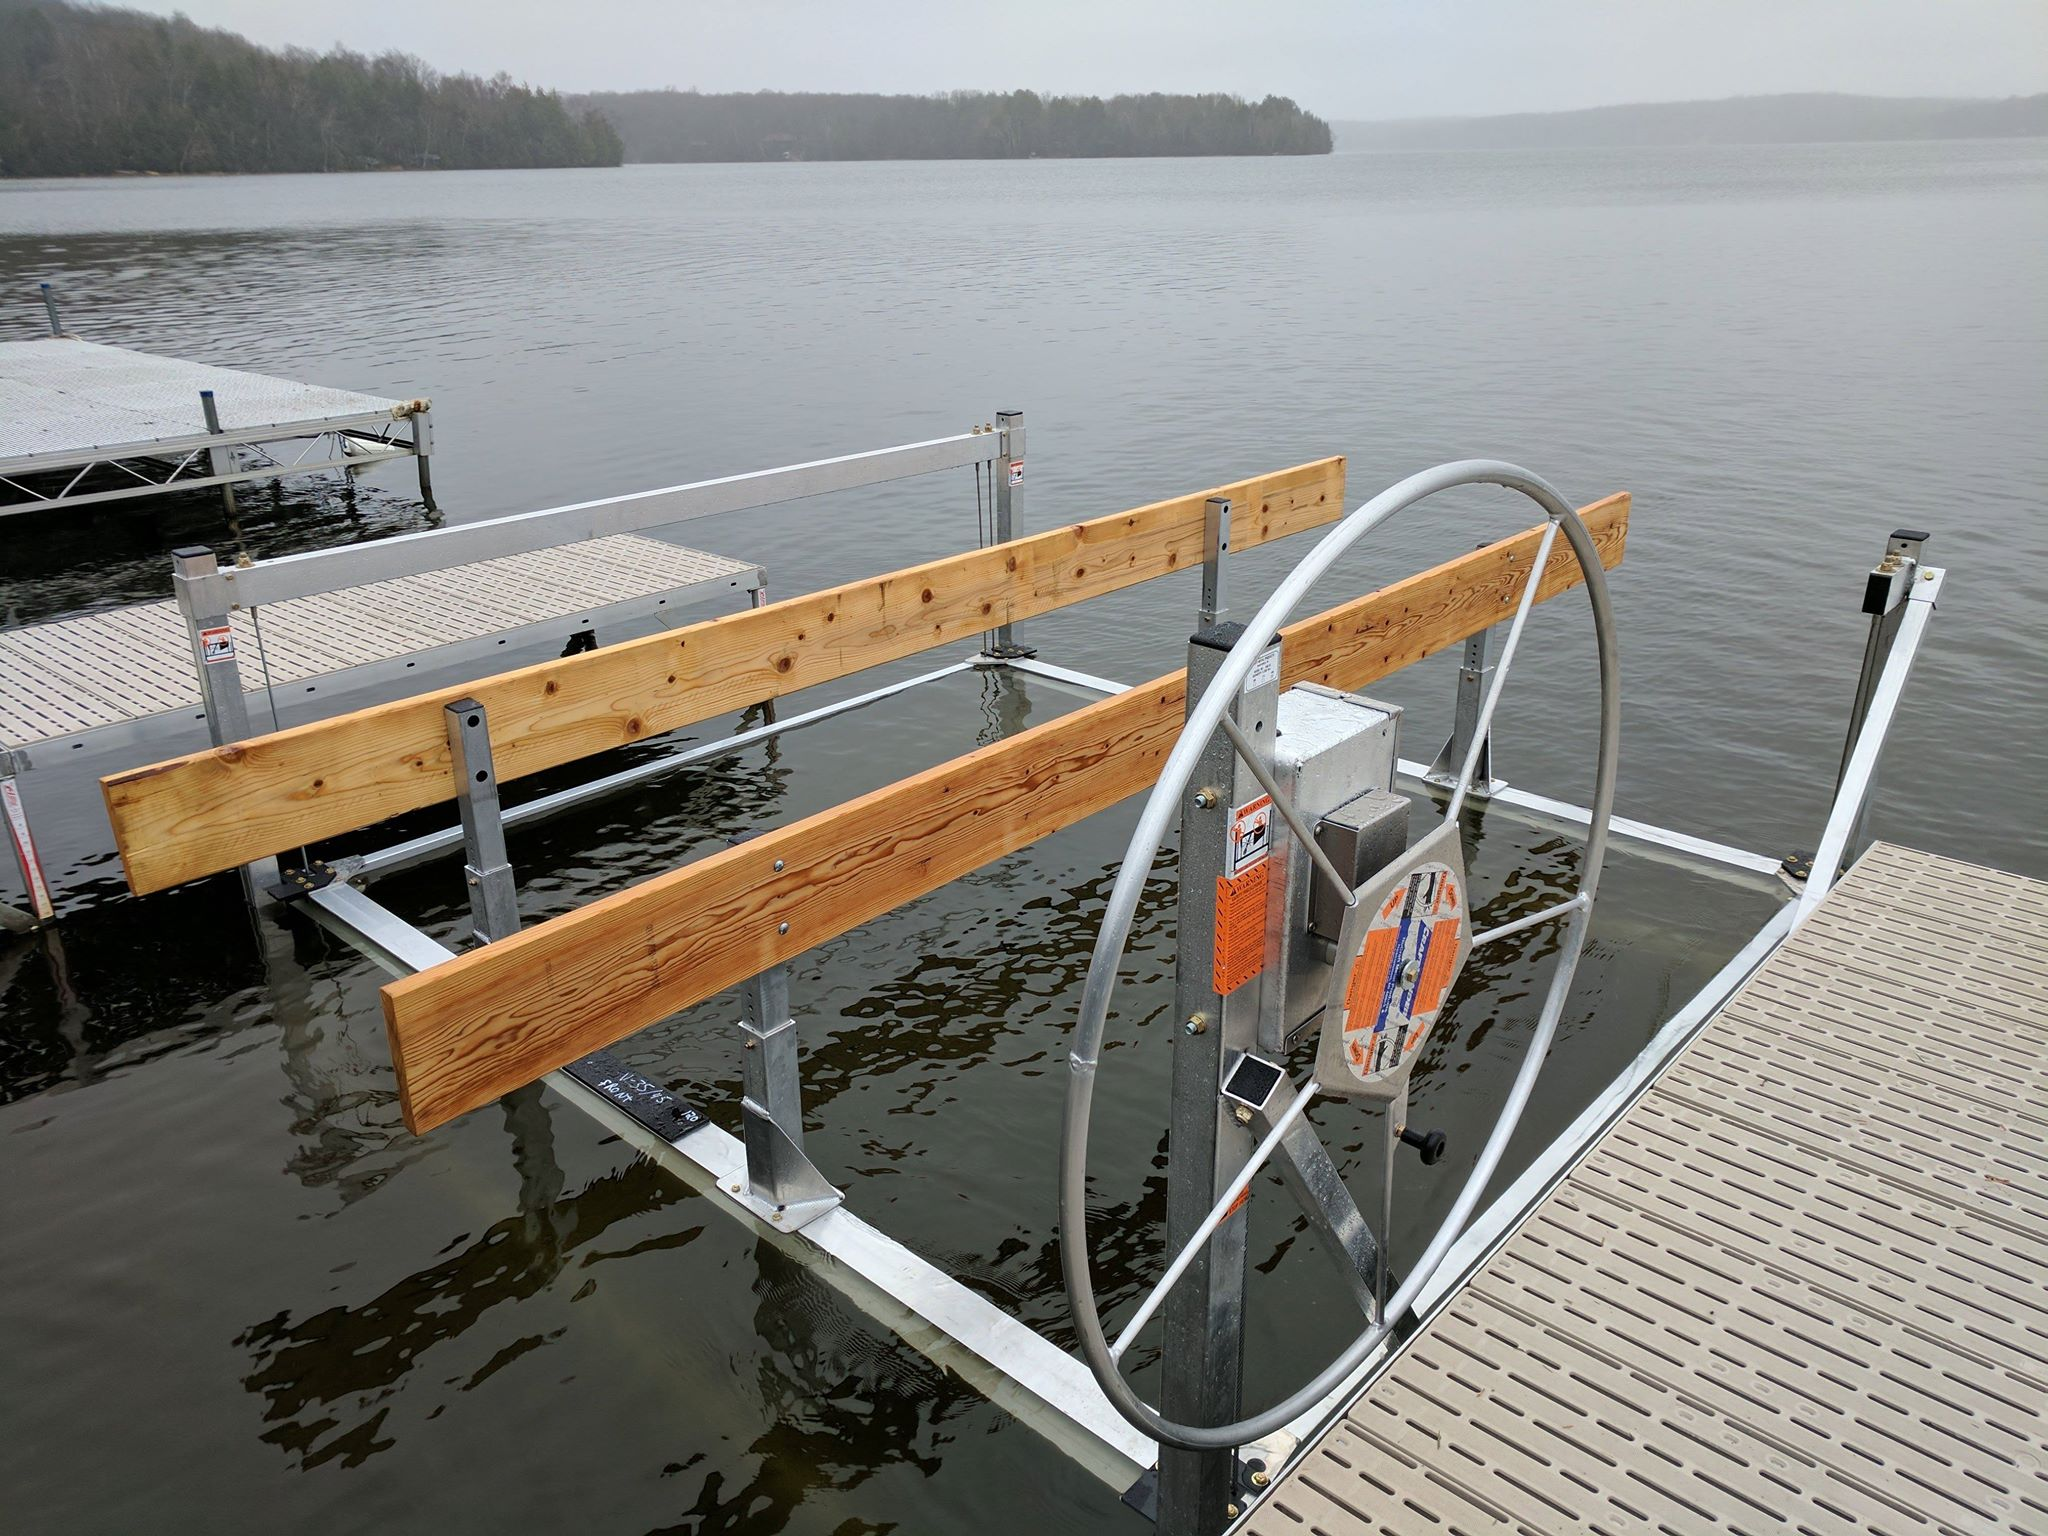 Lifts and Docks - Craftlander Boat Lift Pricing